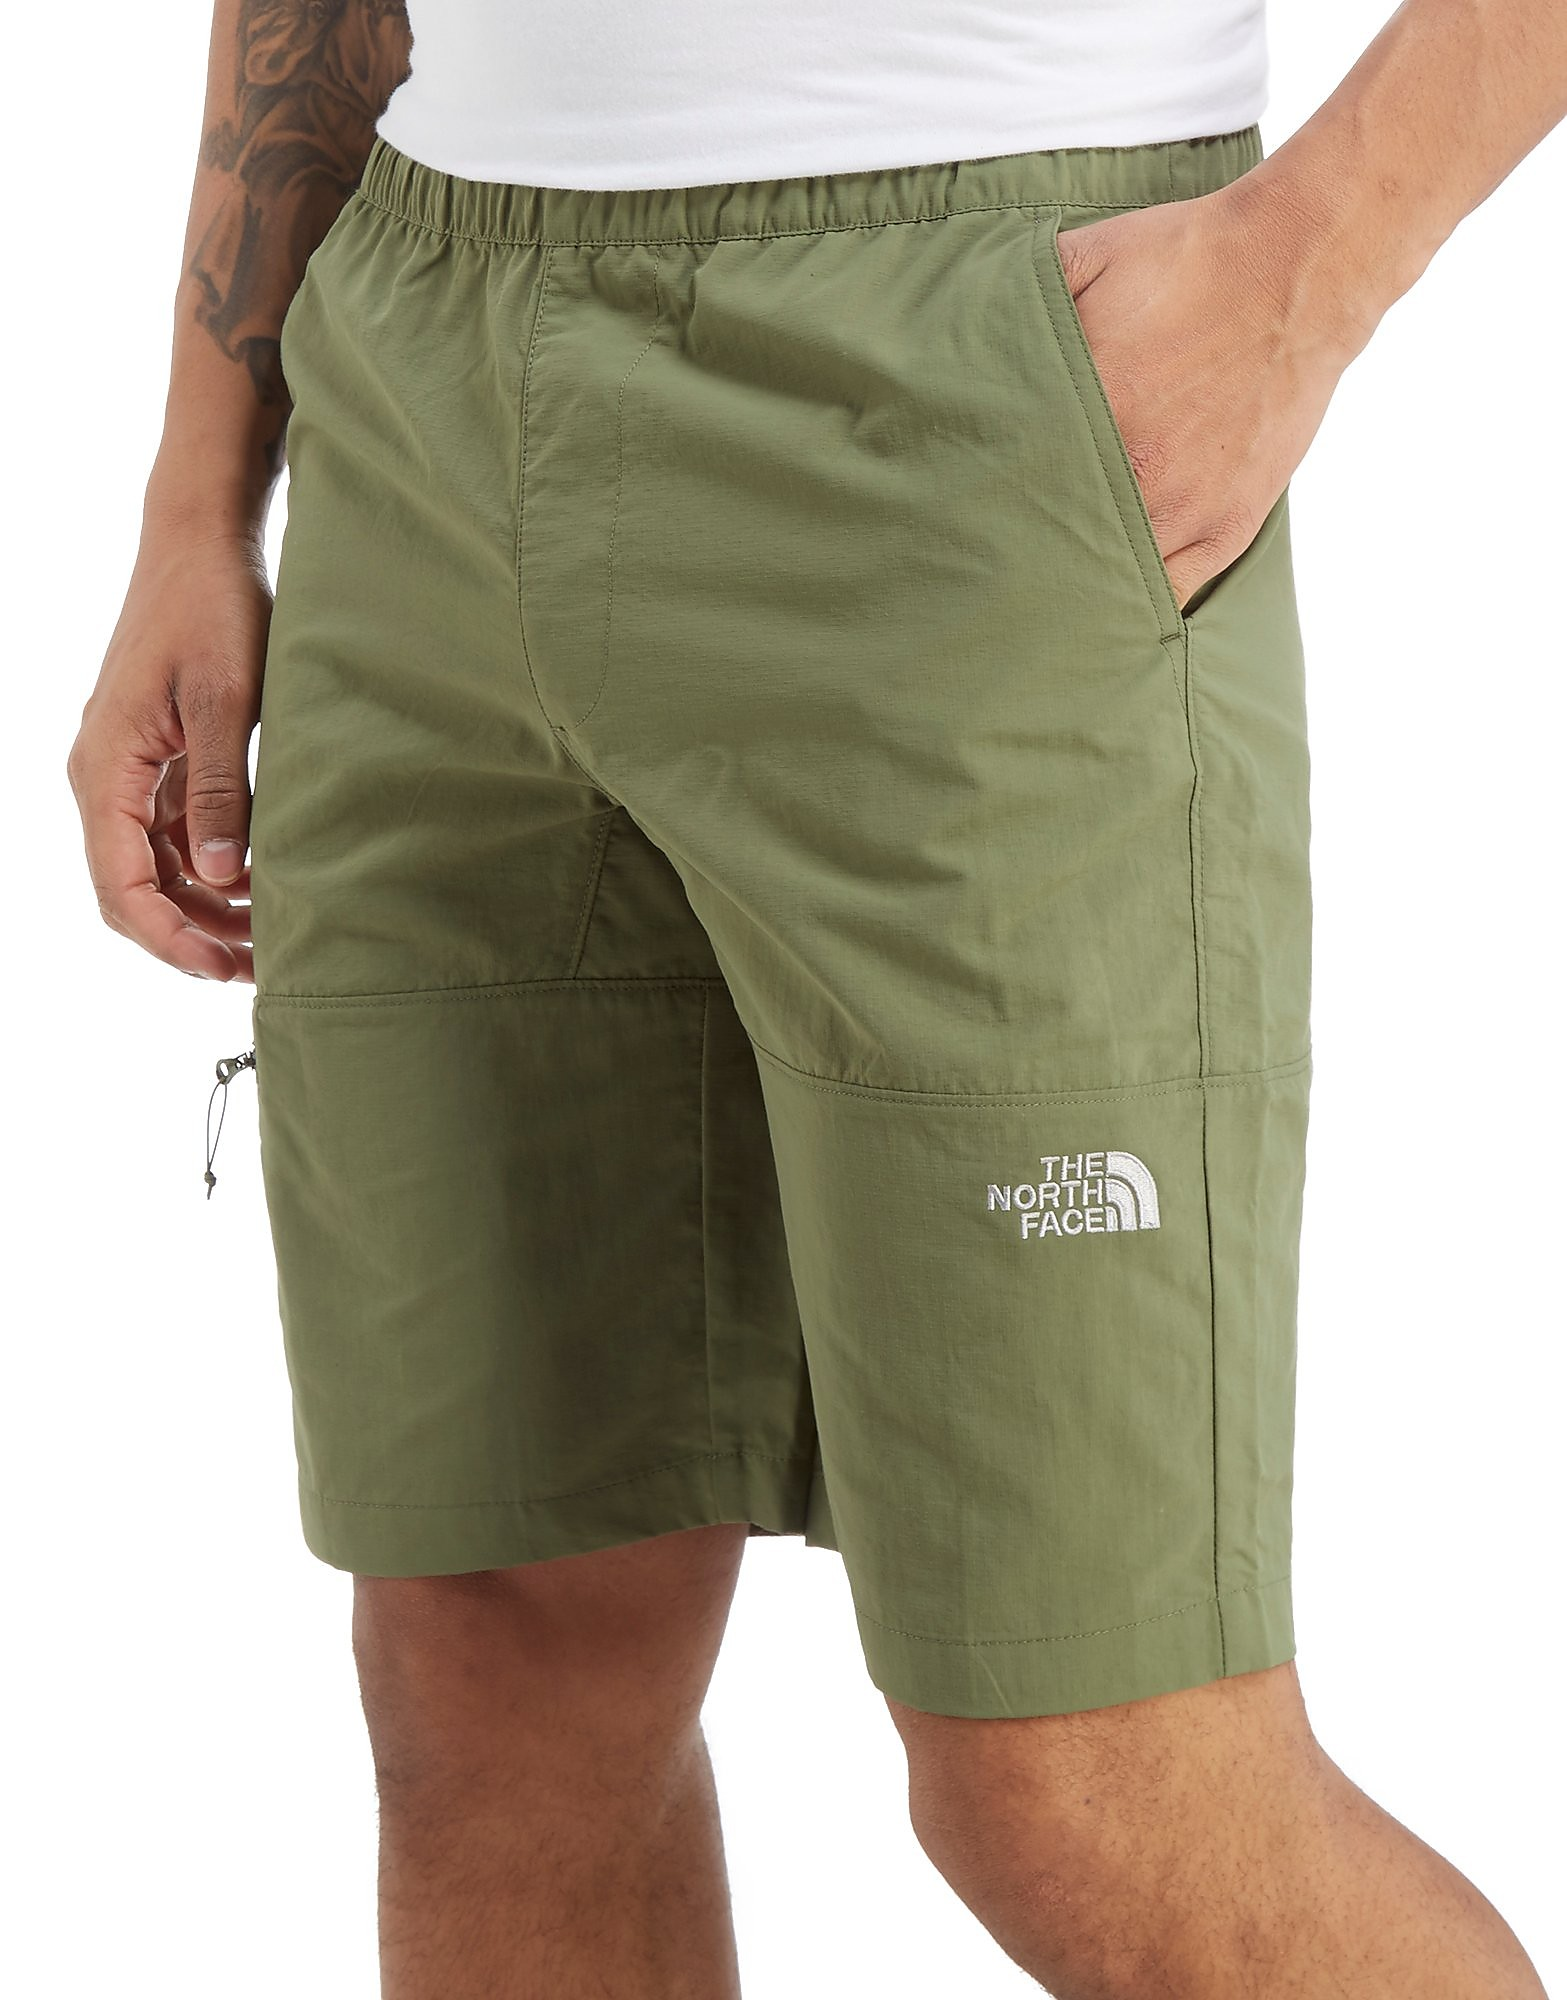 The North Face Z-Pocket Woven Shorts